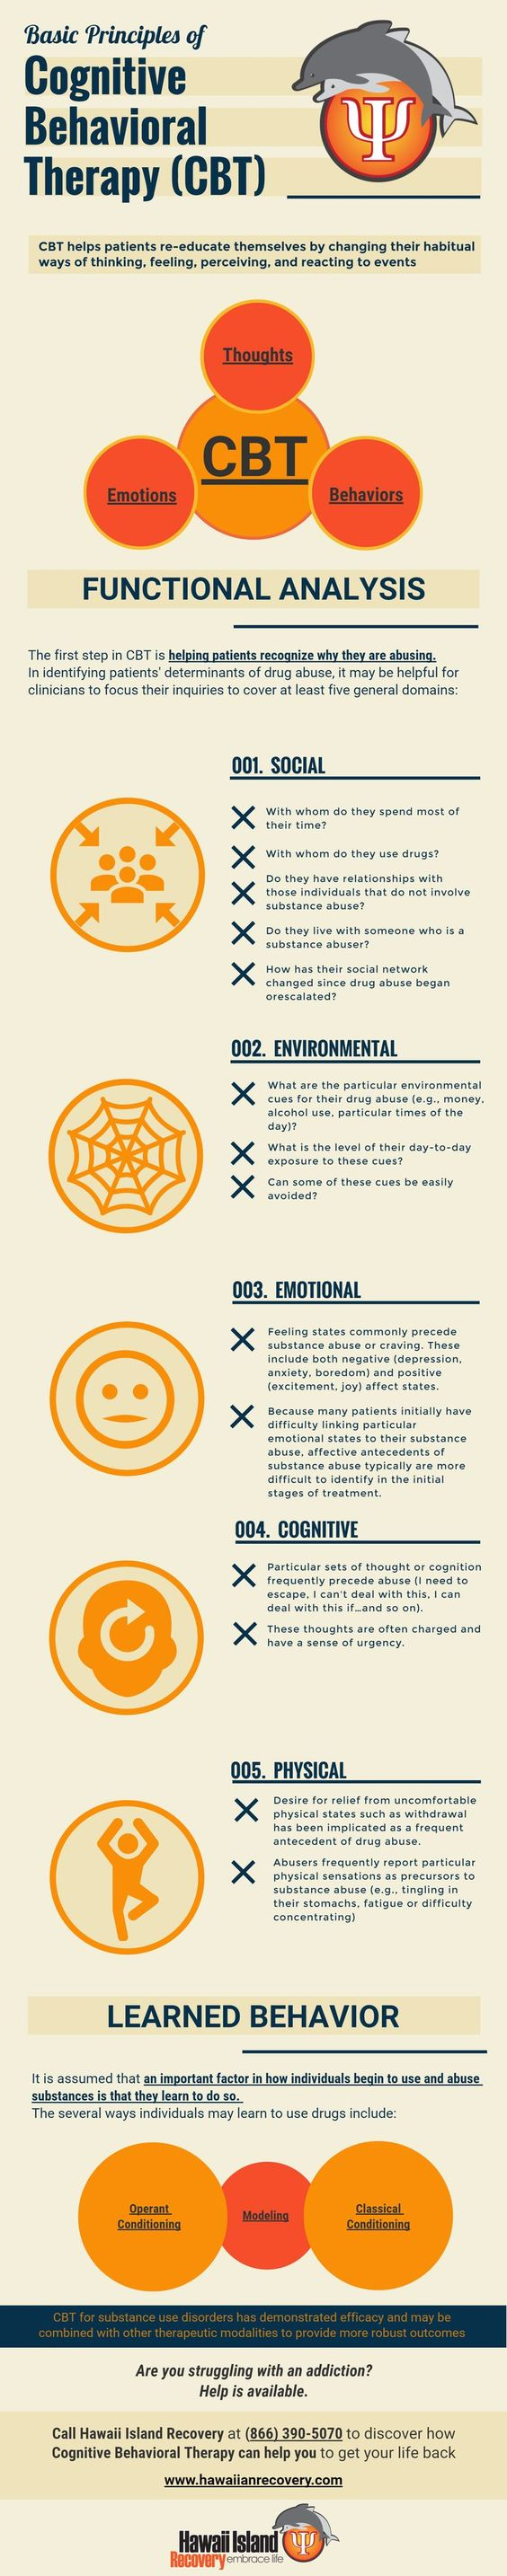 Want to know what therapies are available. Heard of CBT. Here are the basic Principles of Cognitive Behavioral Therapy. Used in many therapeutic areas including, anxiety, PTSD, panic attacks, depression, OCD, eating disorders, addiction, low self esteem, agrophobia, etc etc